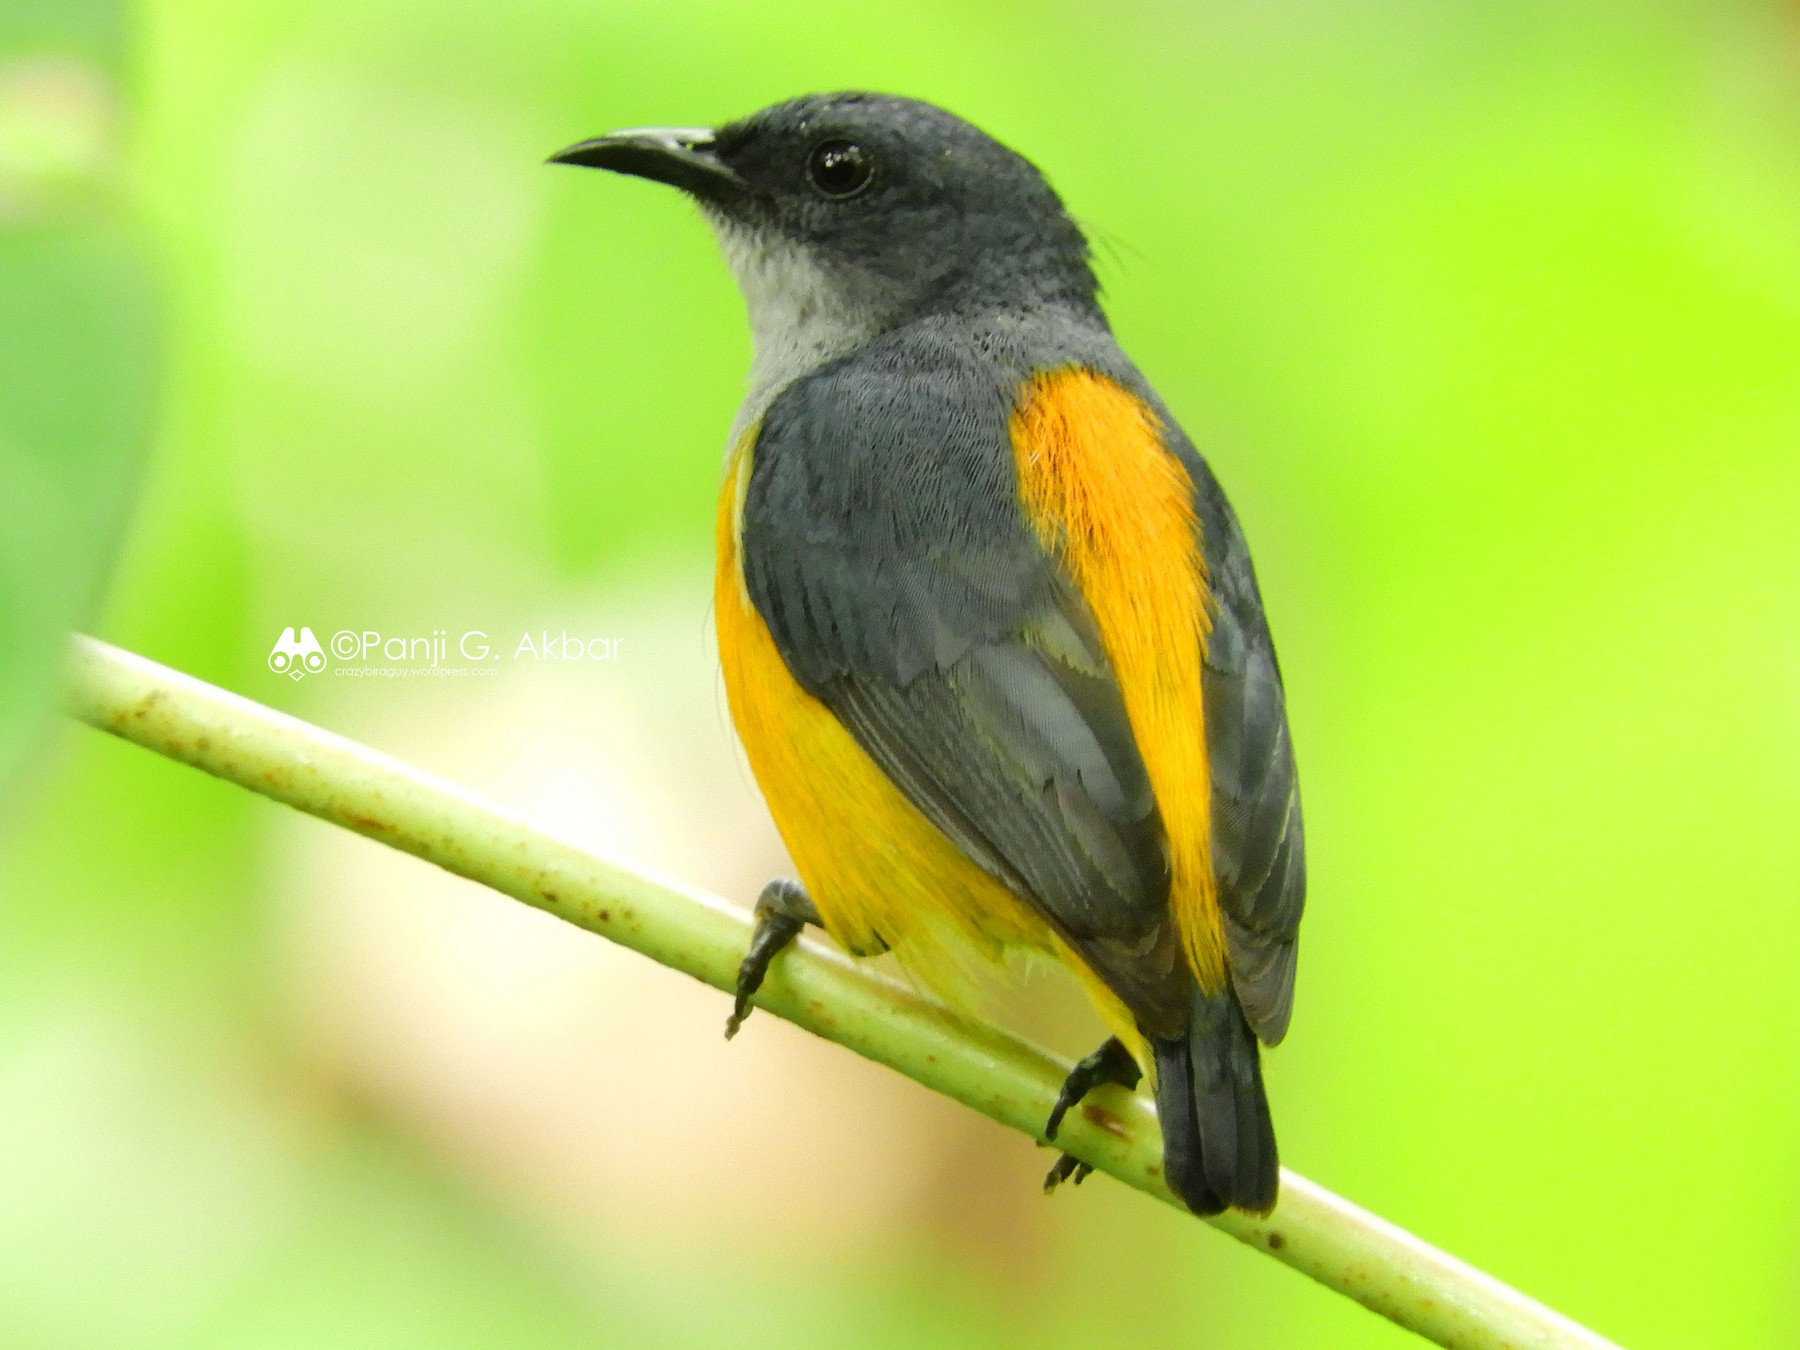 Orange-bellied Flowerpecker - Panji Gusti Akbar